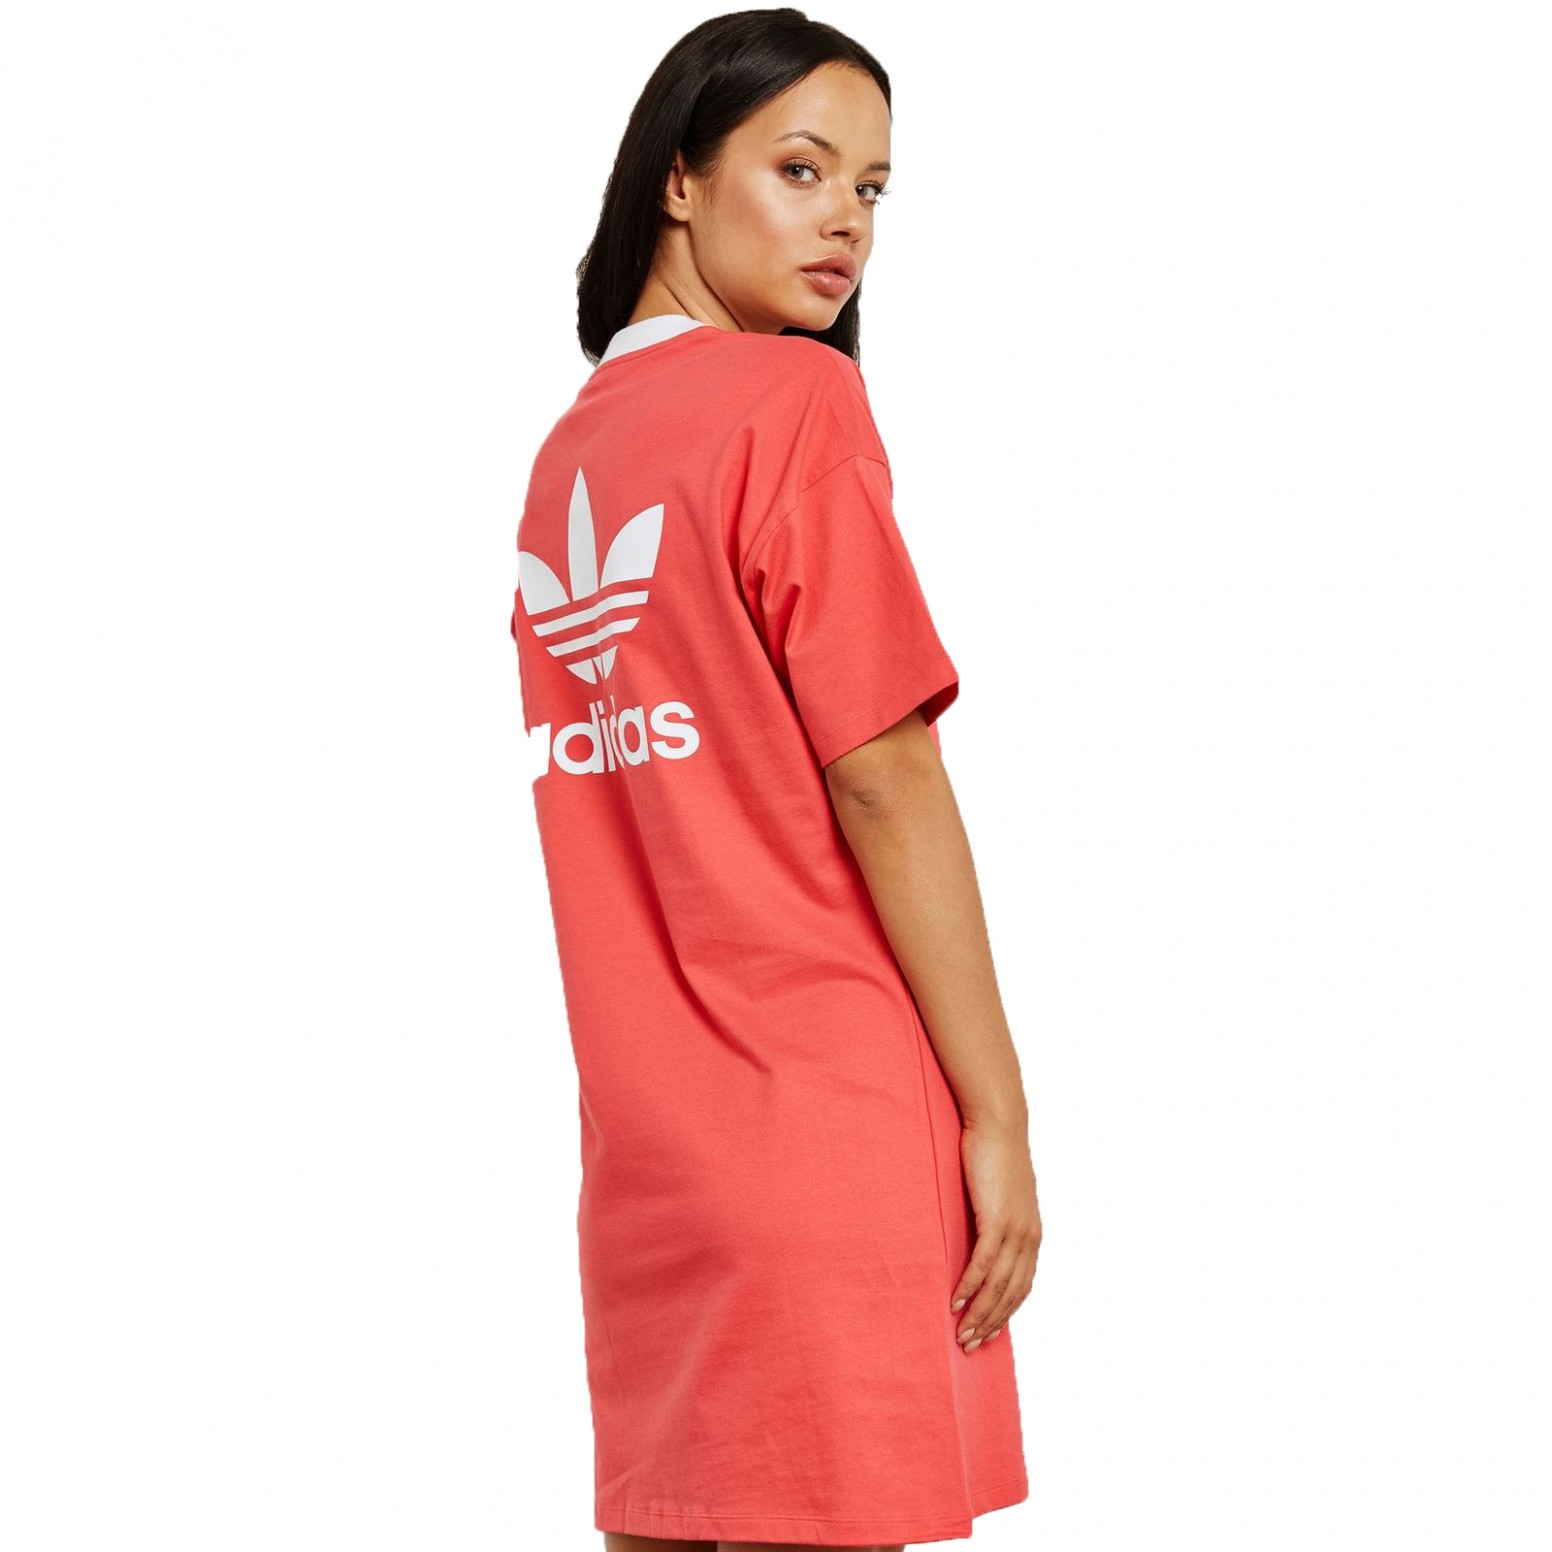 details about adidas originals trefoil tee dress kleid longshirt sommerkleid core pink rot kleid pink